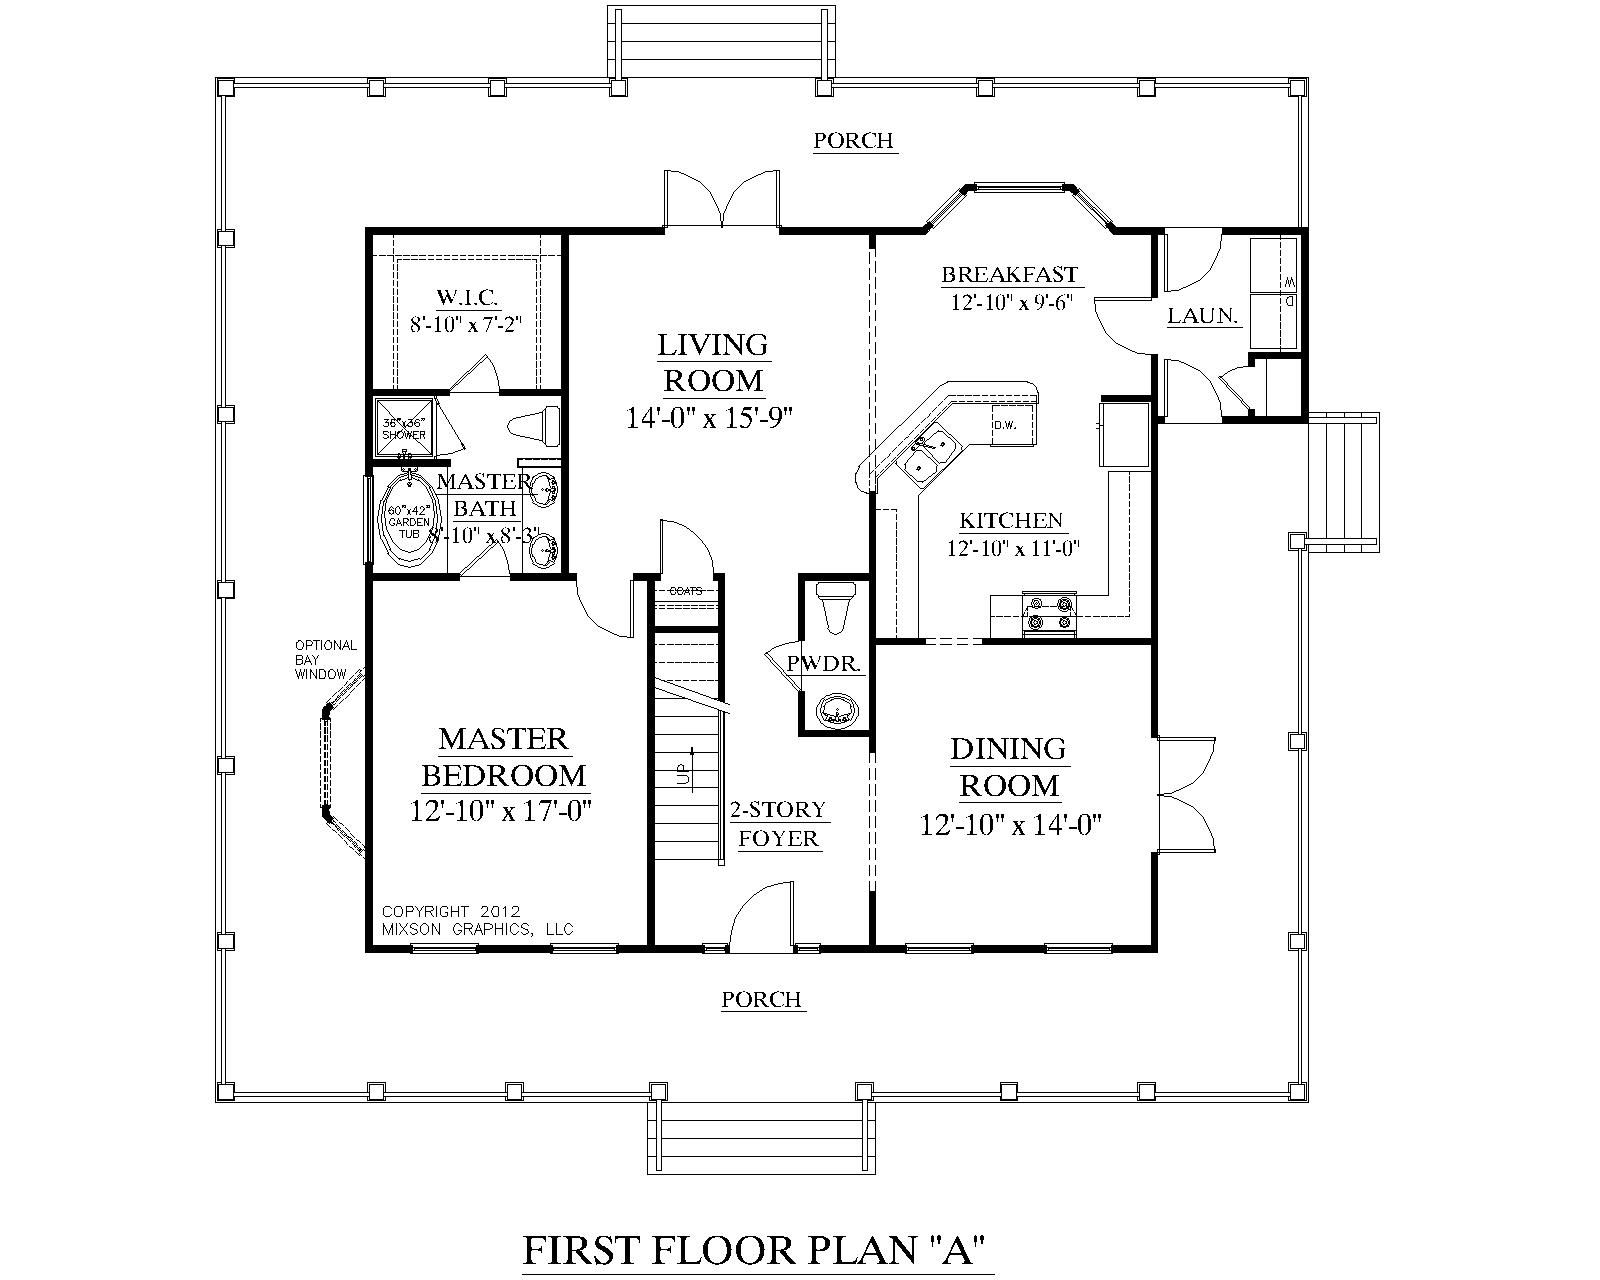 small one bedroom house plans traditional 1 12 story house plan - Small 3 Bedroom House Plans